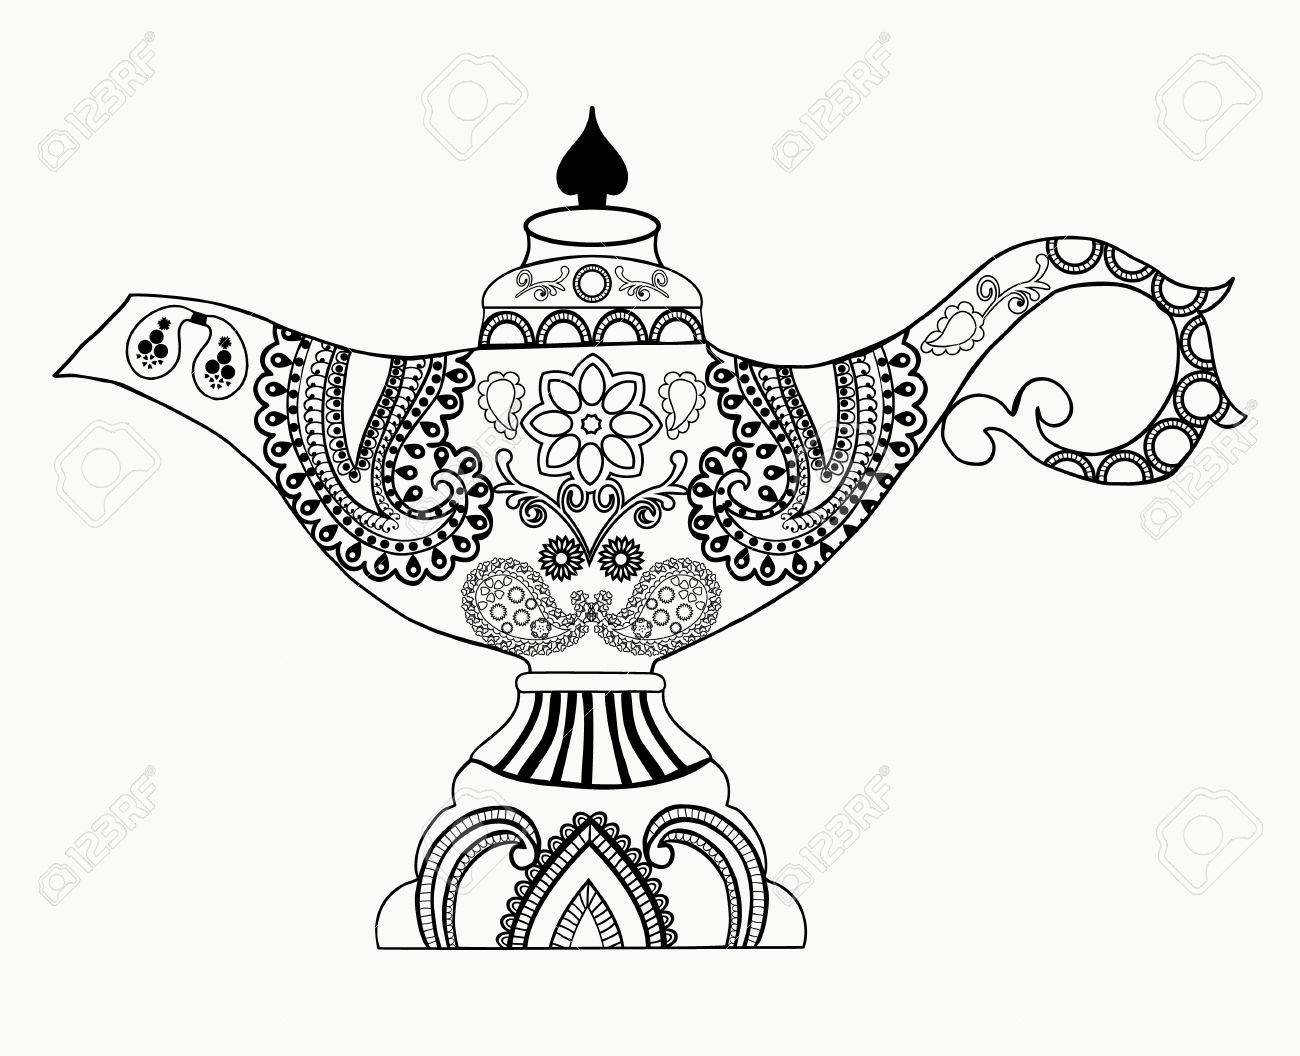 1300x1056 Alladin Magic Lamp Line Art Design For Coloring Book For Adult